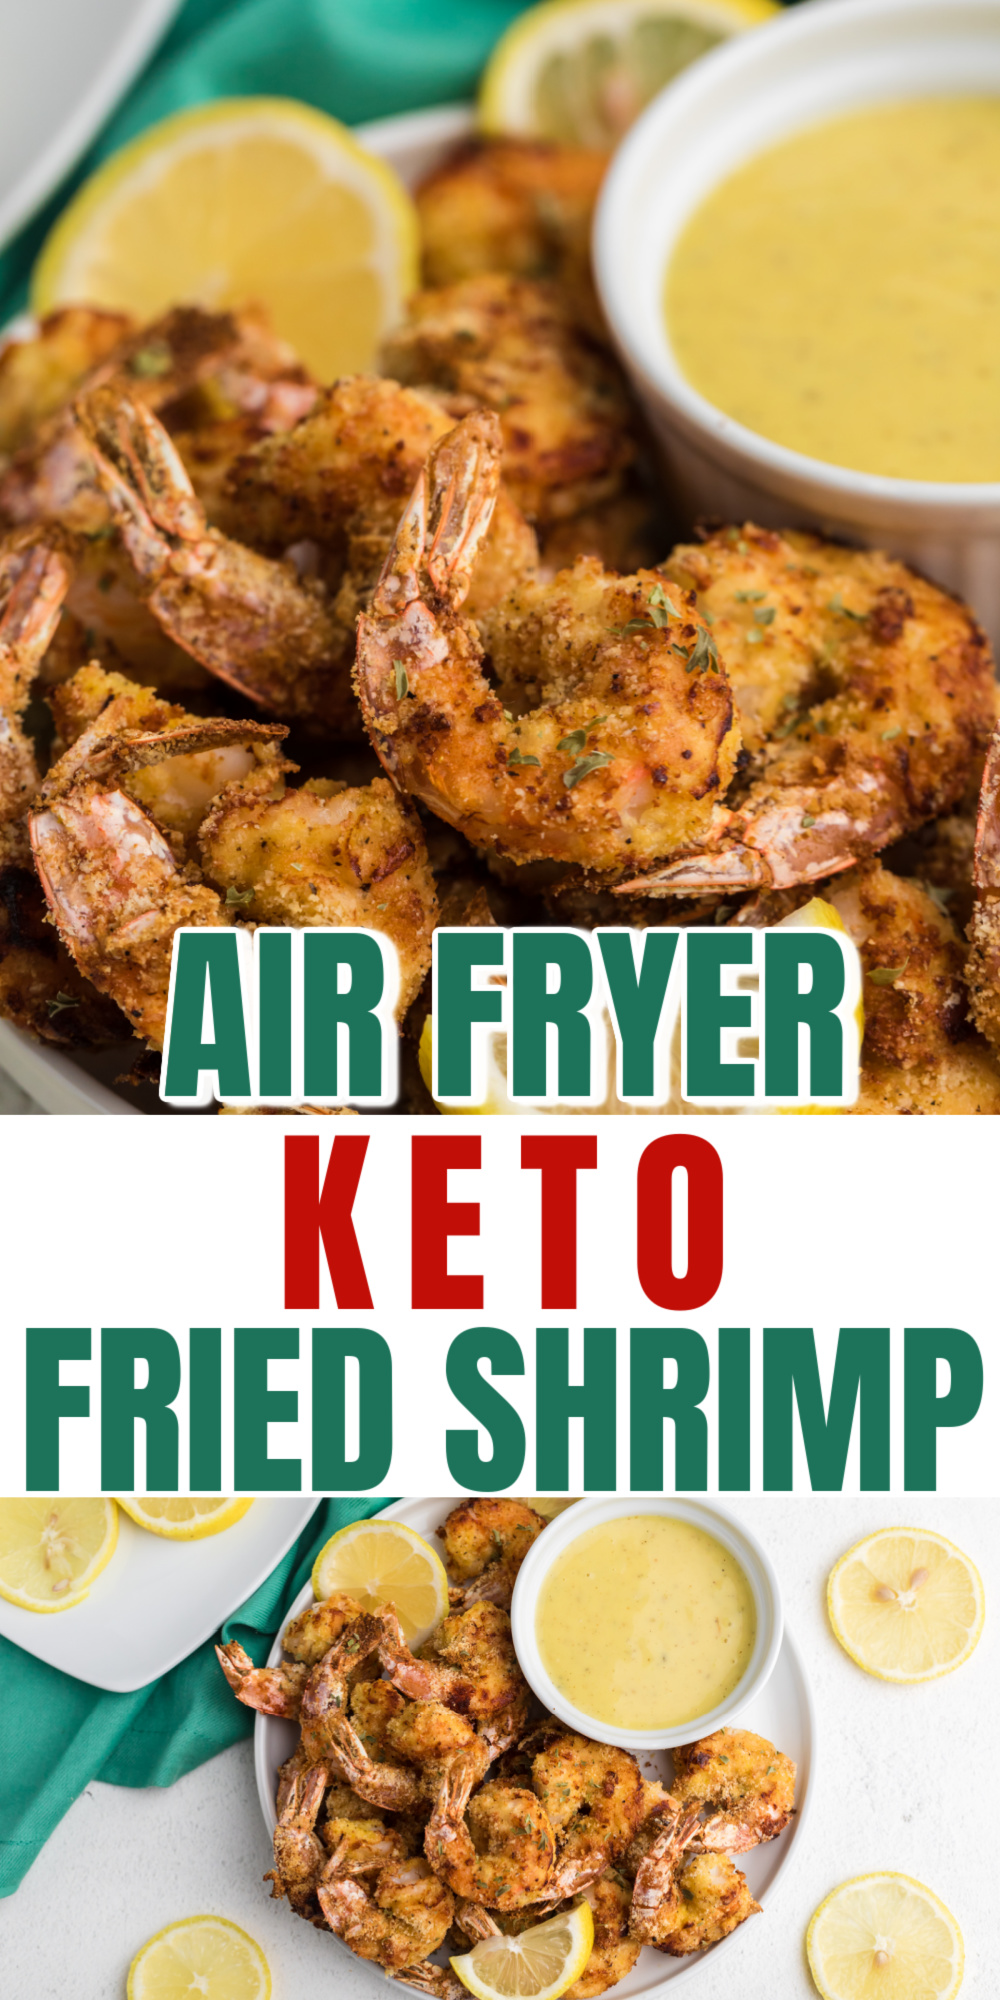 This easy recipe is the best way to use up fresh shrimp! I love this Air Fryer Keto Fried Shrimp recipe. It's one of my favorite keto air fryer recipes that gives me a great low carb appetizer to enjoy. Made with shrimp, almond flour, and the perfect blend of seasonings.